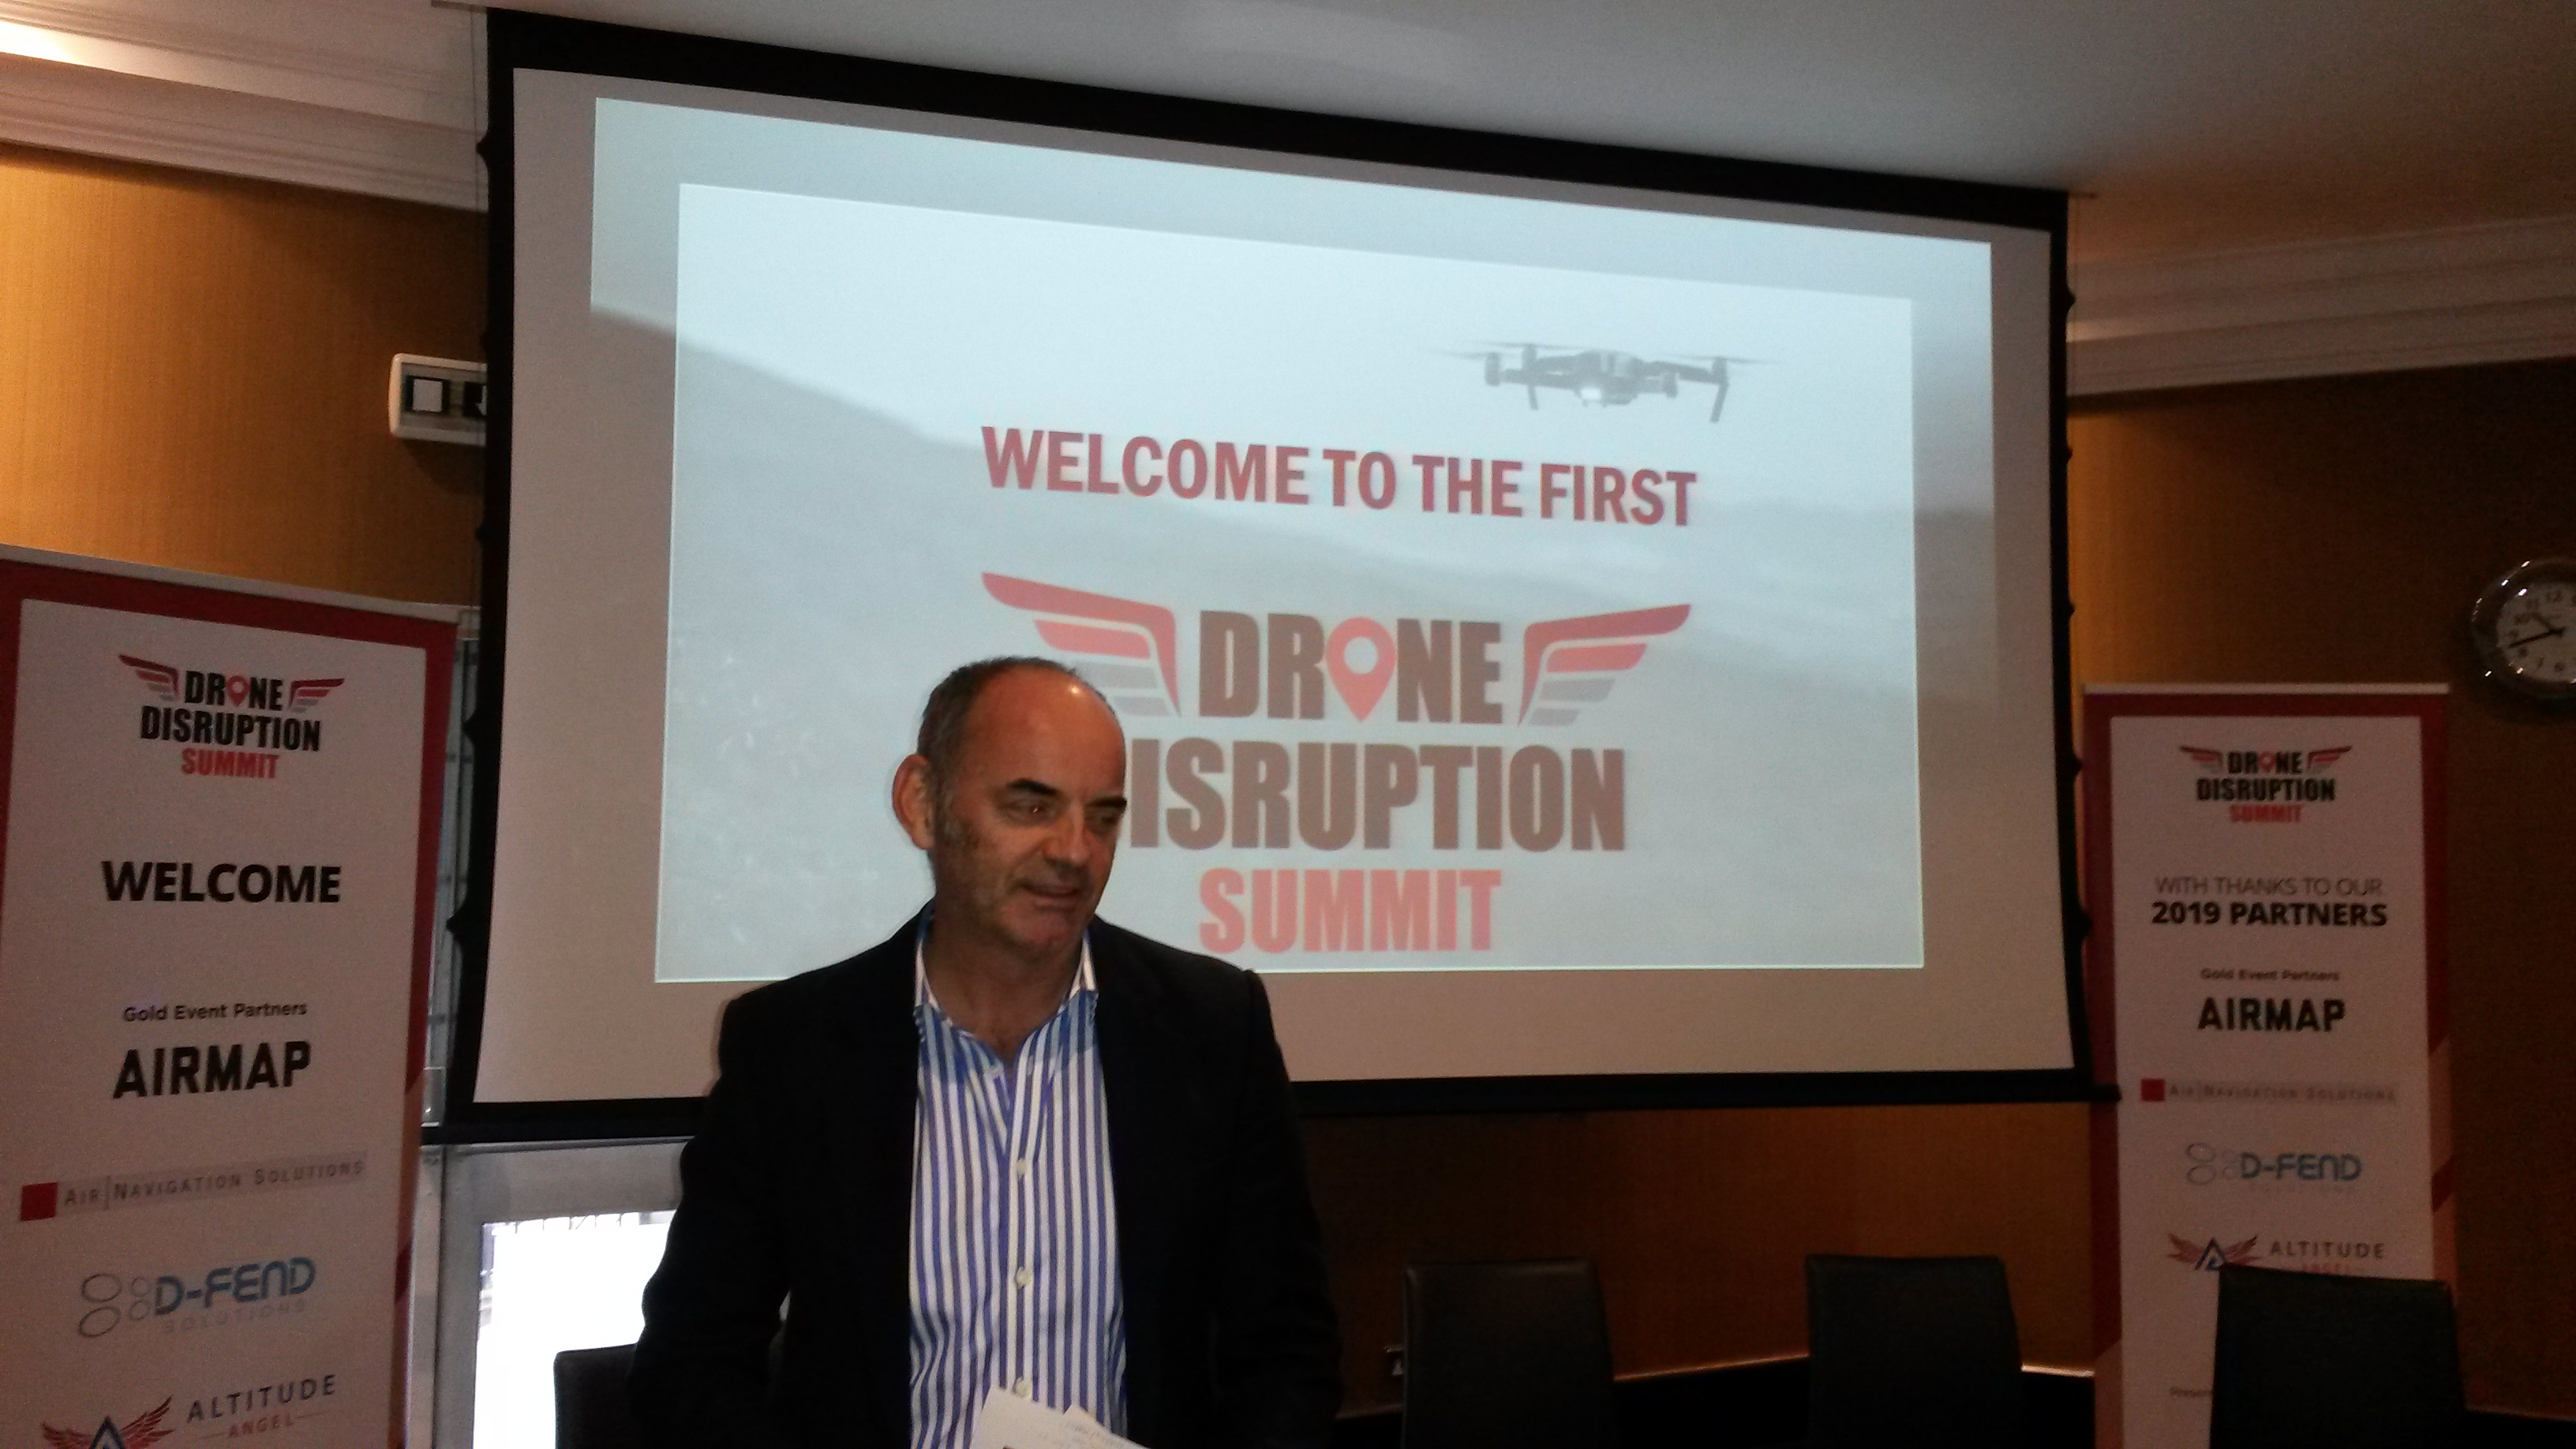 U-Flyte at the first Drone Disruption Summit at Heathrow